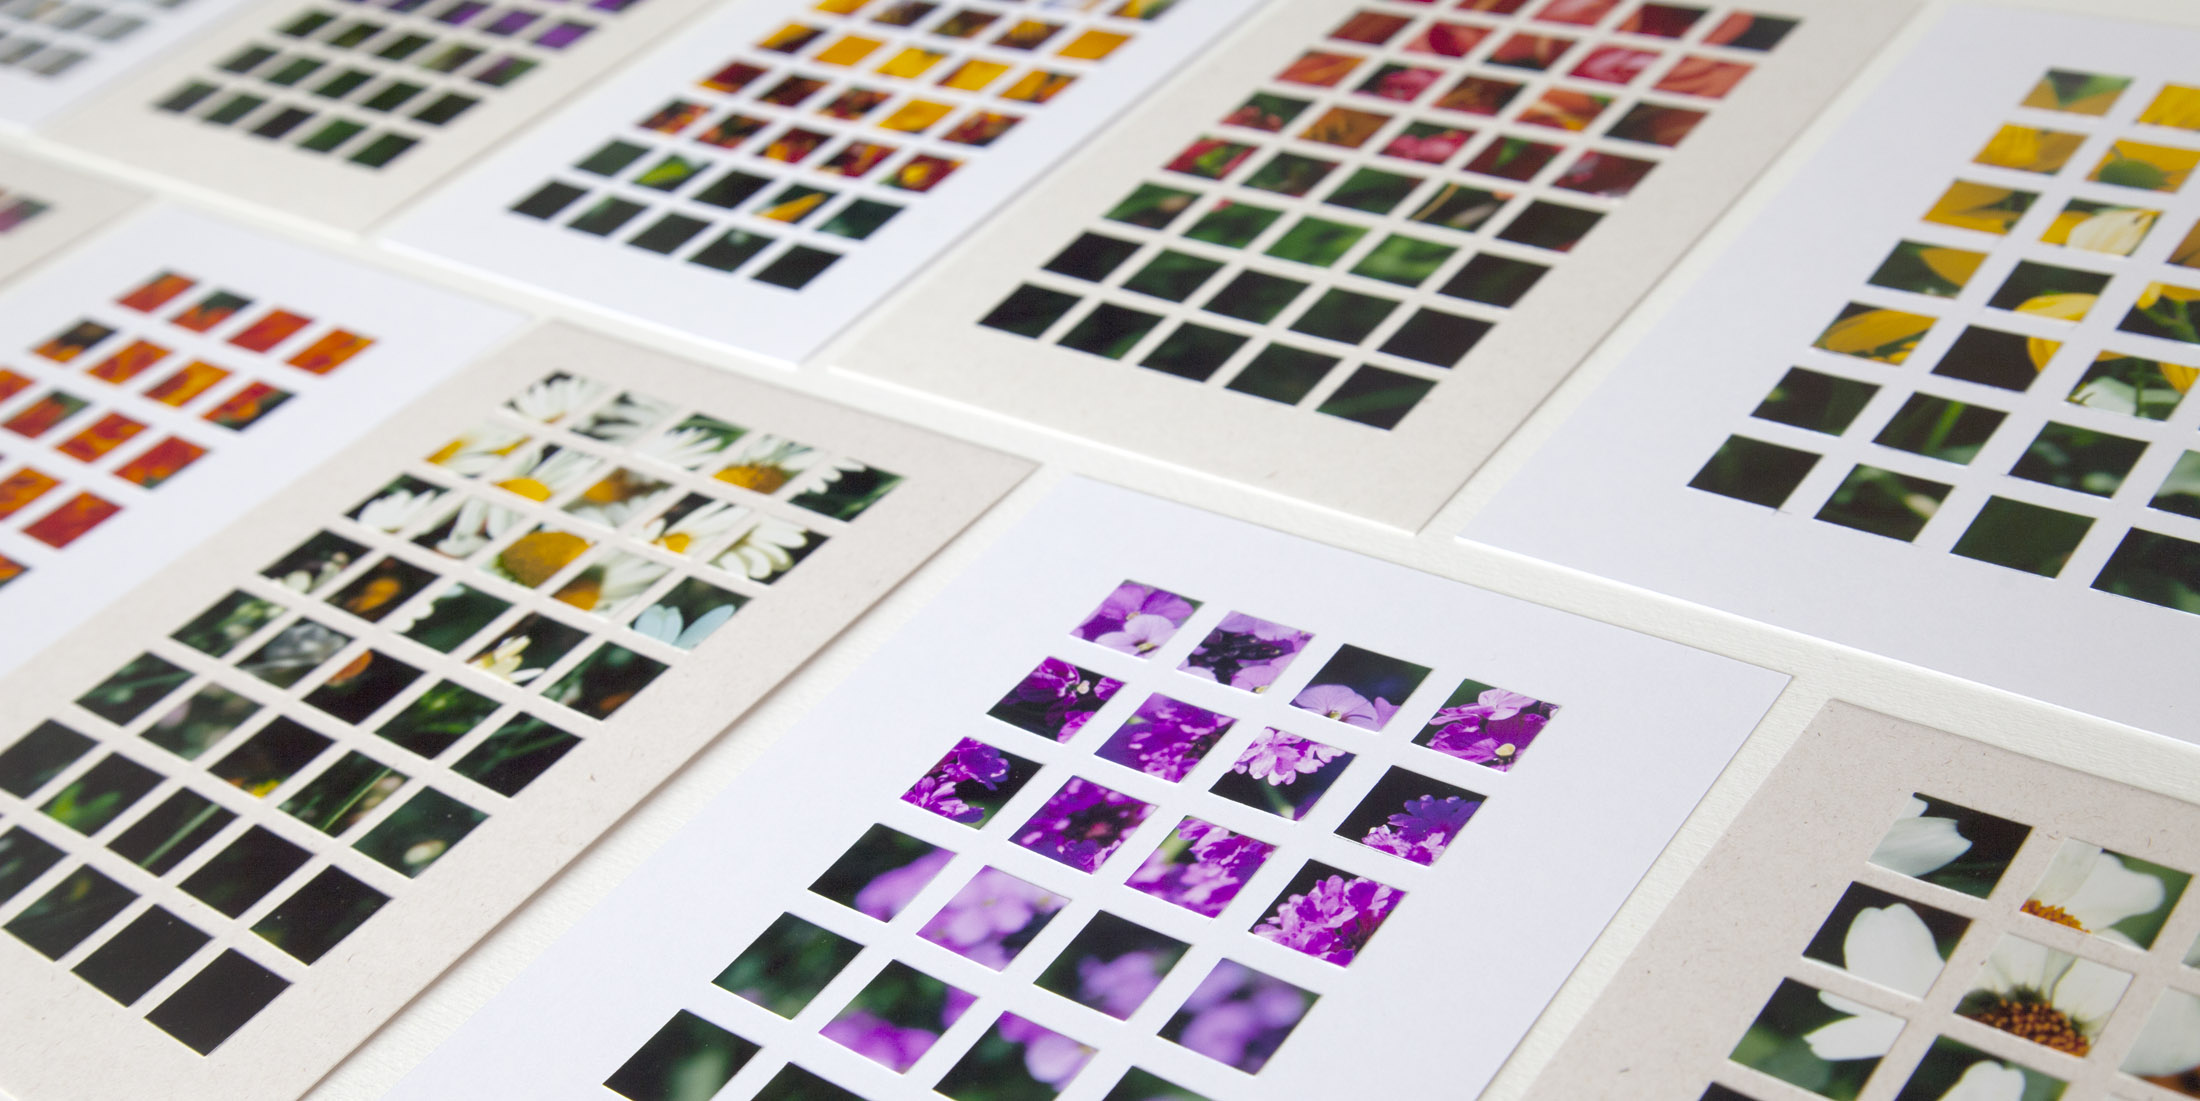 Flower Botanical photo grid by Irish artist Doreen Kennedy